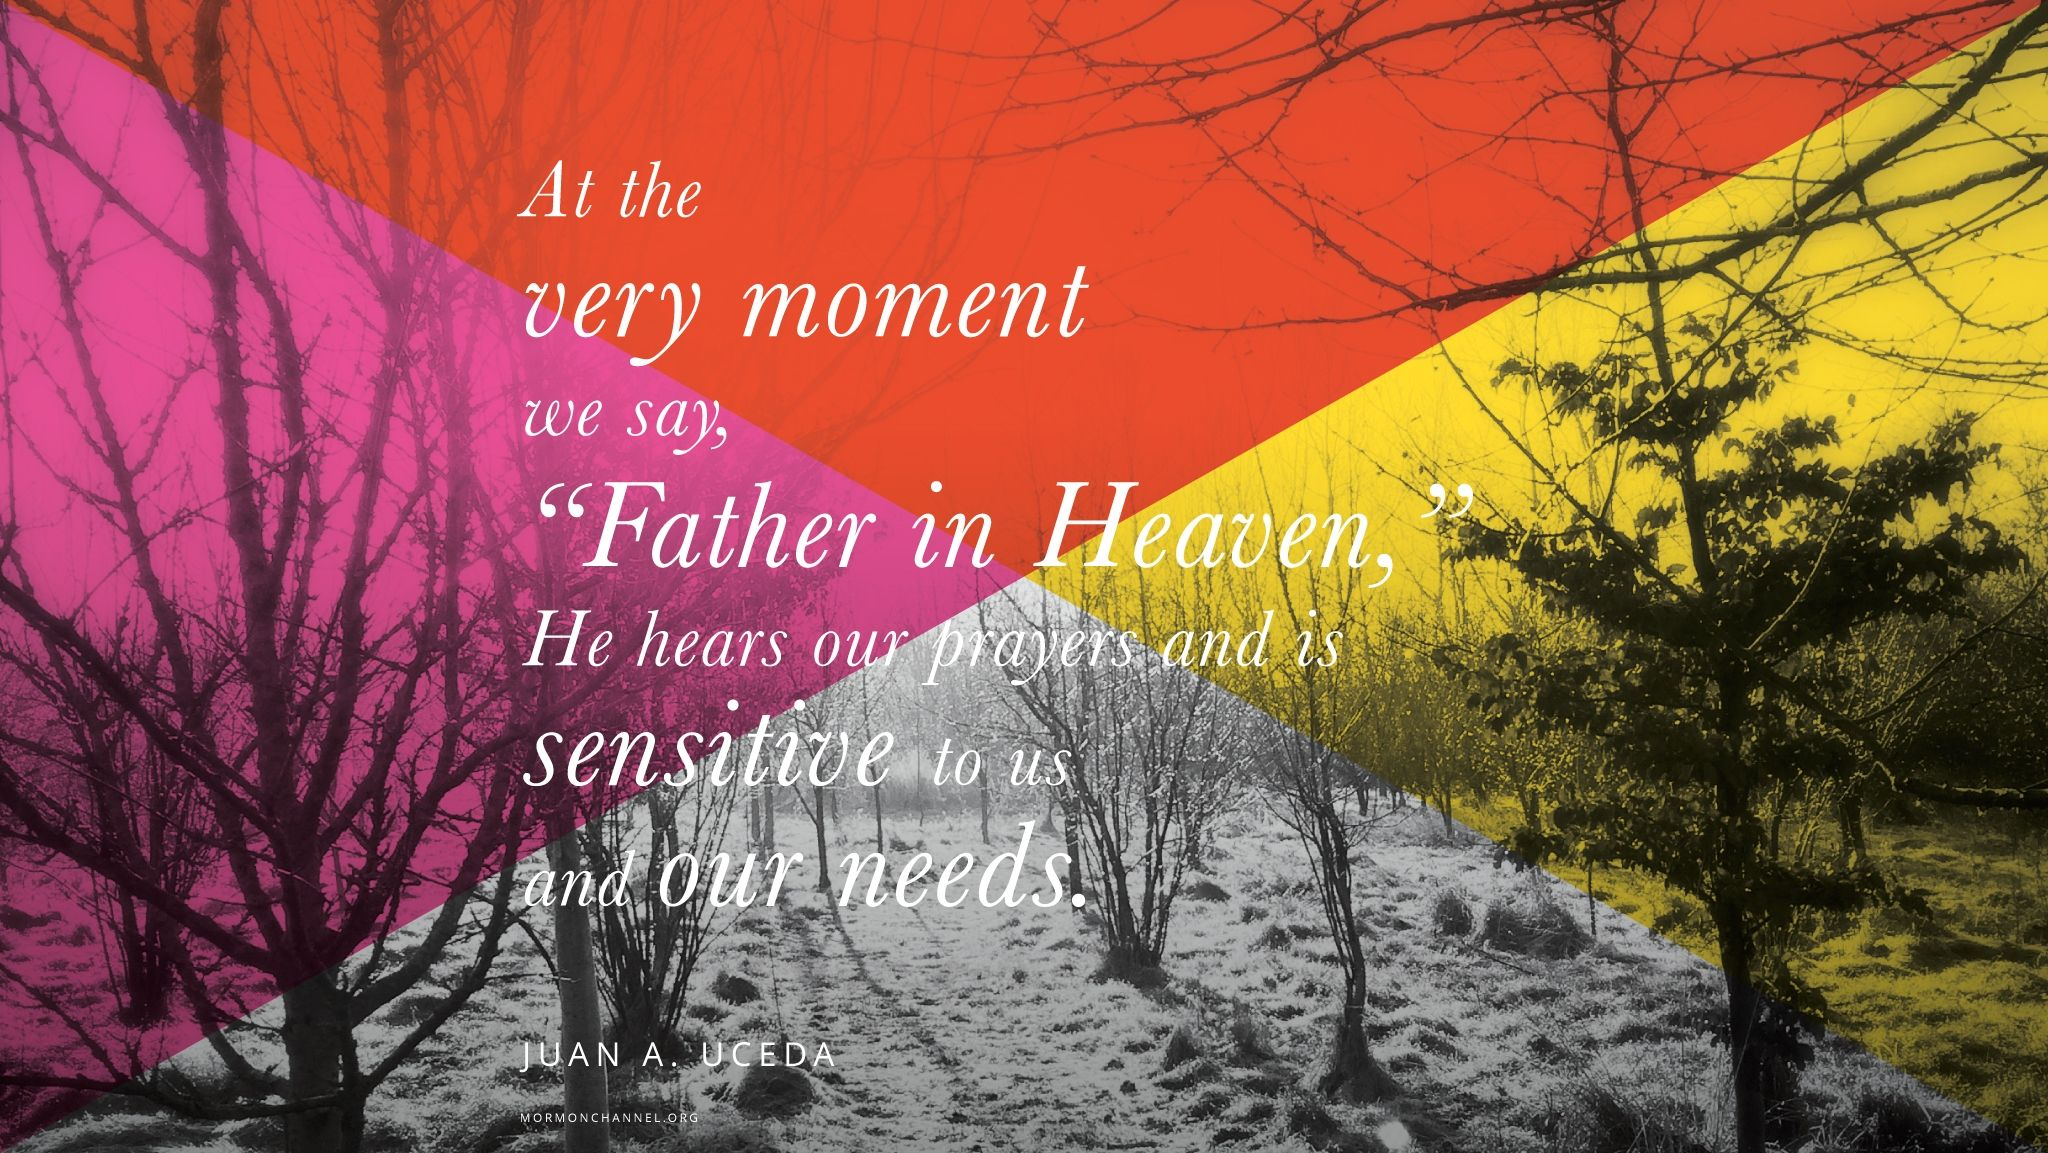 """""""At the very moment we say, 'Father in Heaven,' He hears our prayers and is sensitive to us and our needs.""""—Elder Juan A. Uceda, """"The Lord Jesus Christ Teaches Us to Pray"""" © undefined ipCode 1."""